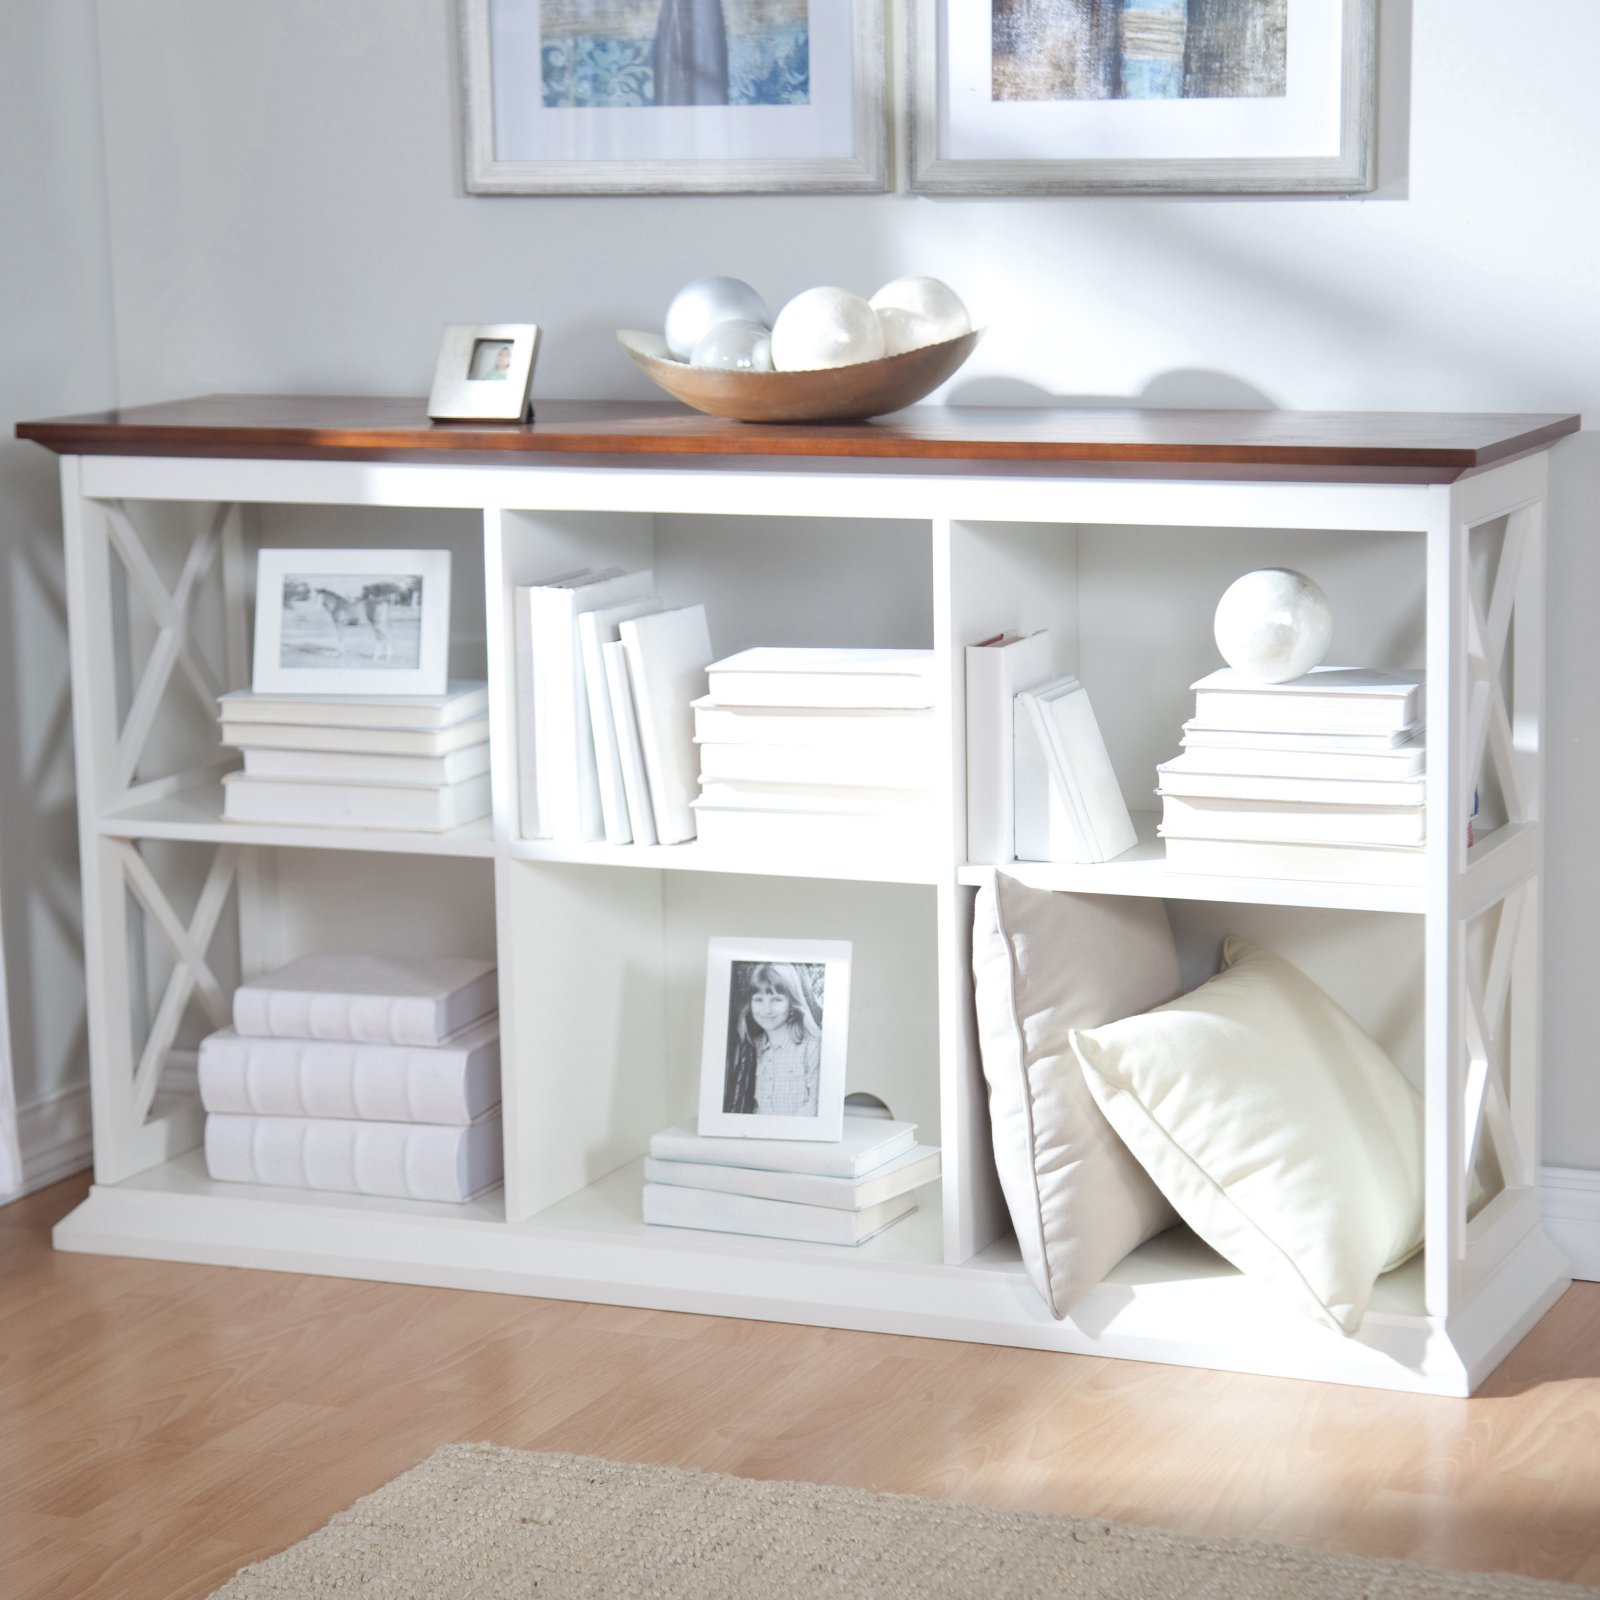 Belham Living Hampton Console Table 2 Shelf Bookcase   White/Oak    Walmart.com